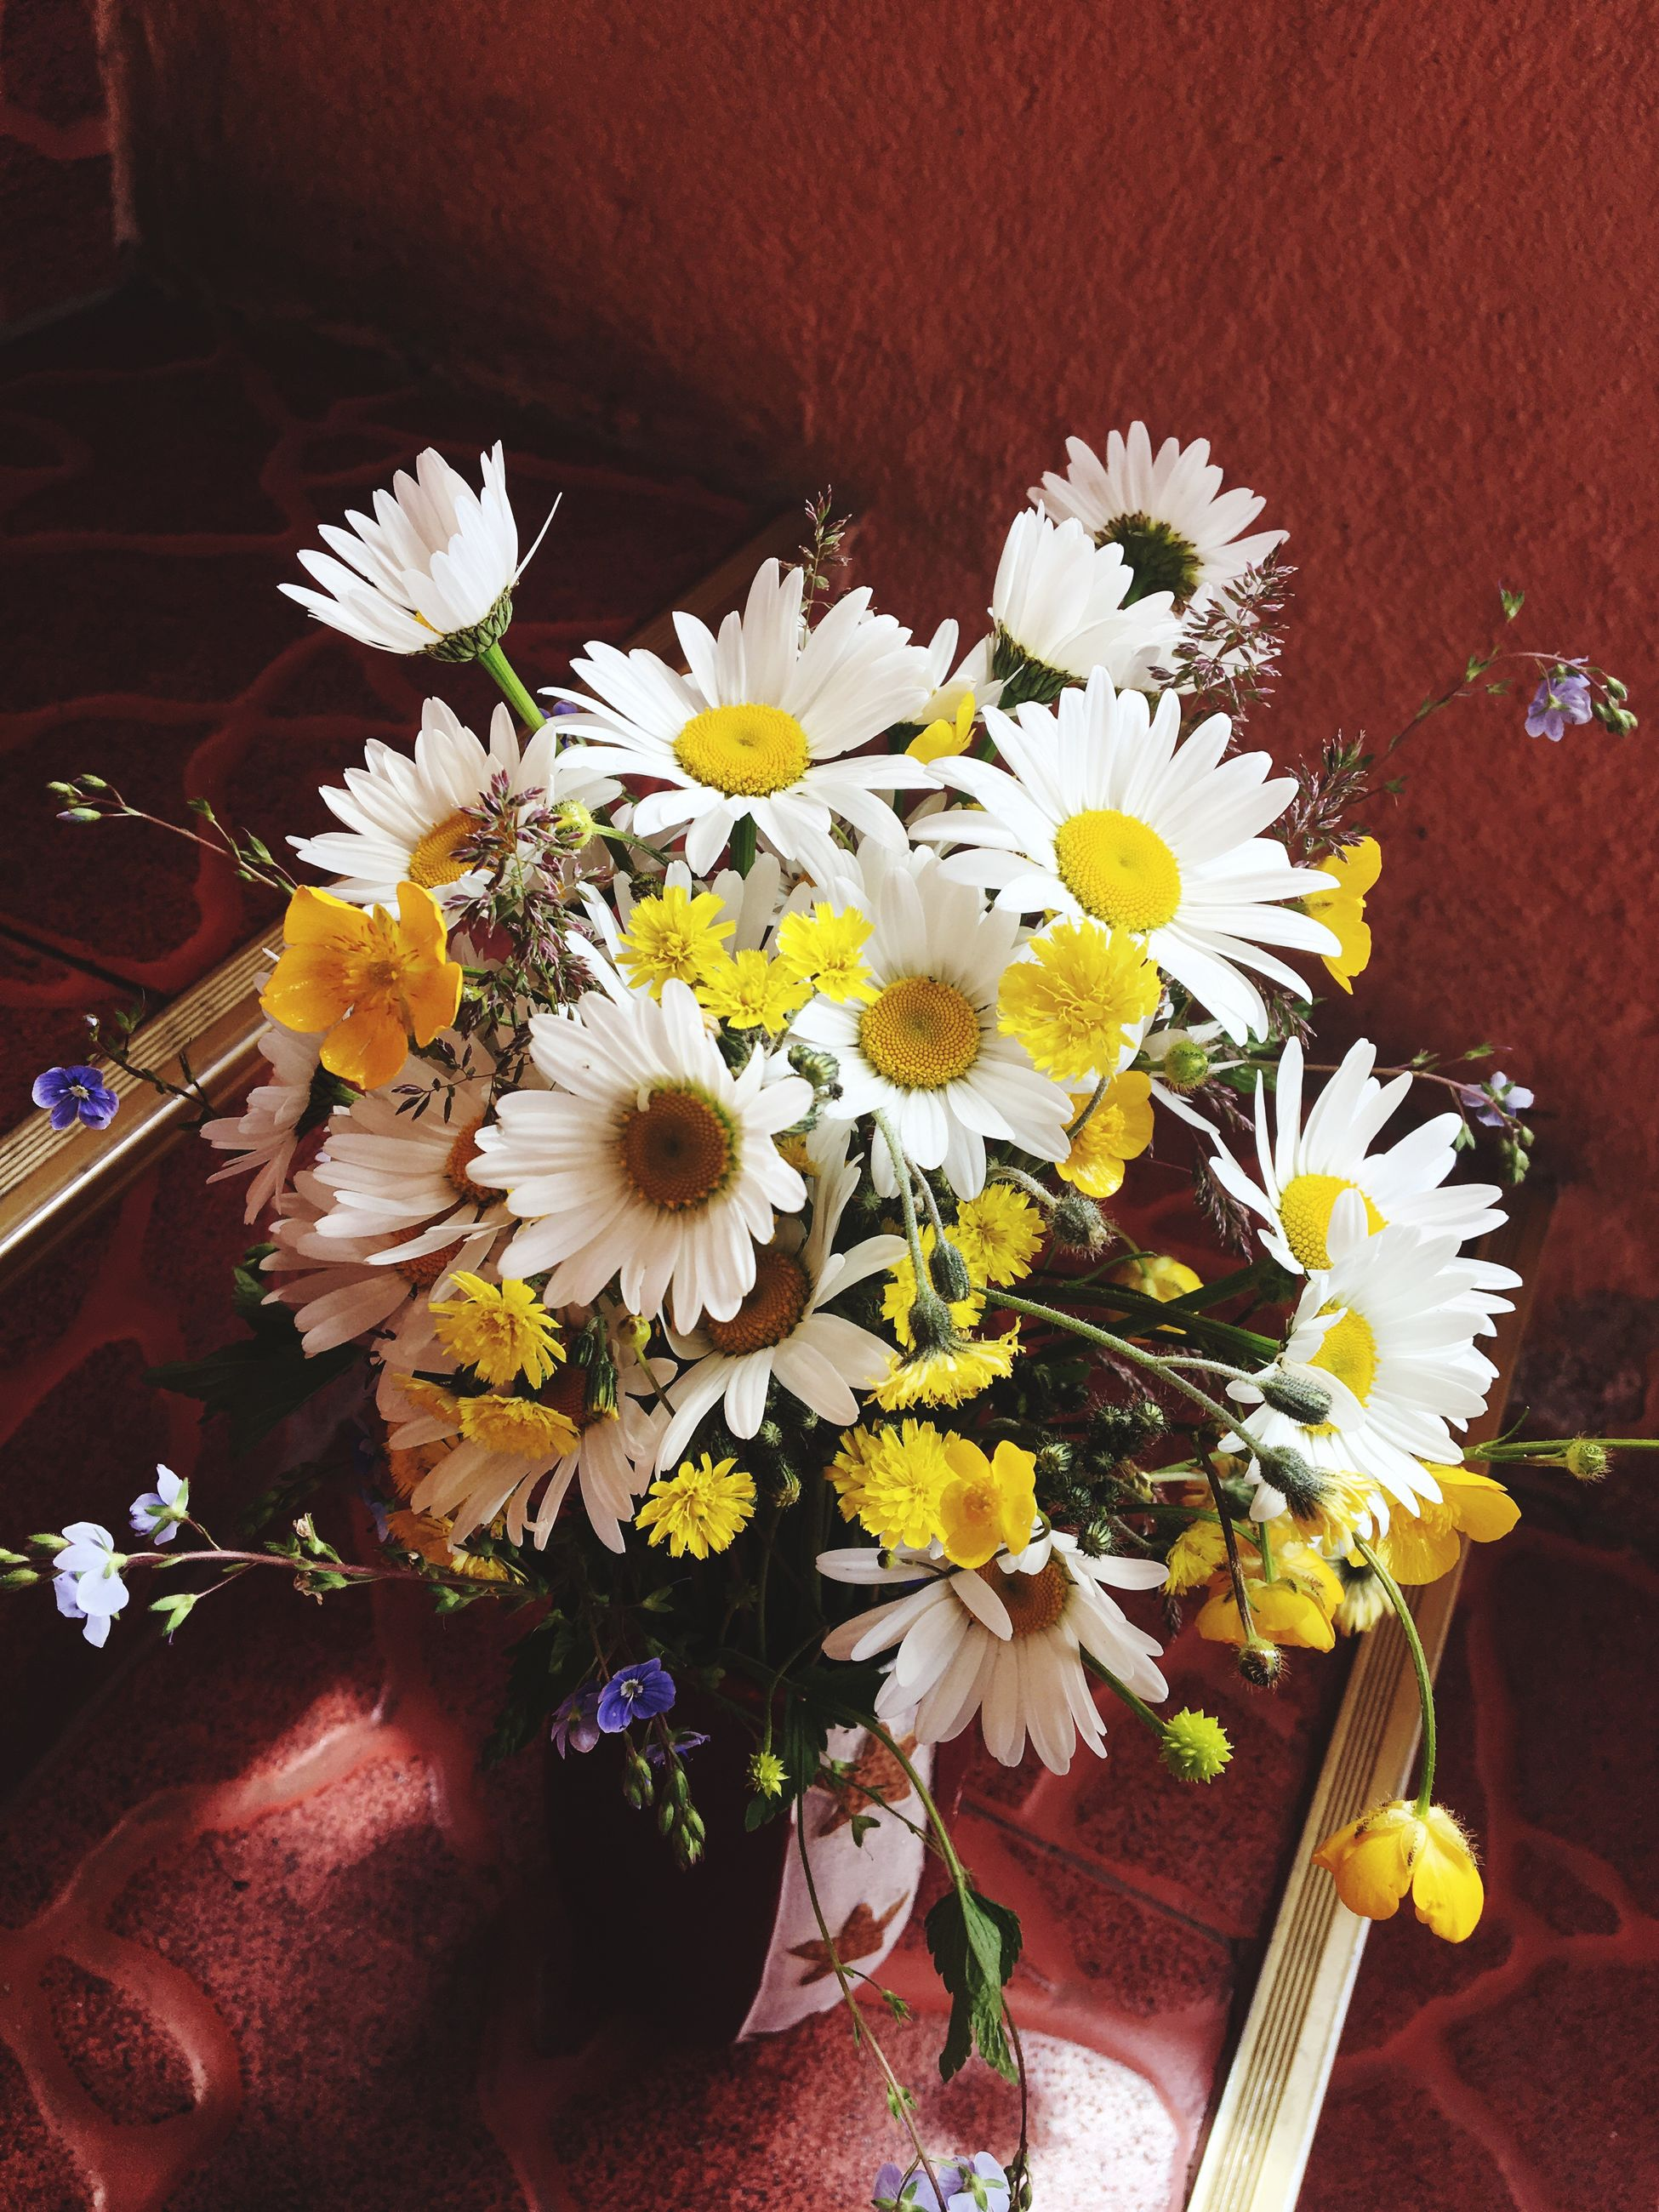 flower, petal, freshness, fragility, indoors, high angle view, white color, flower head, table, potted plant, decoration, vase, growth, beauty in nature, nature, plant, blooming, no people, close-up, daisy